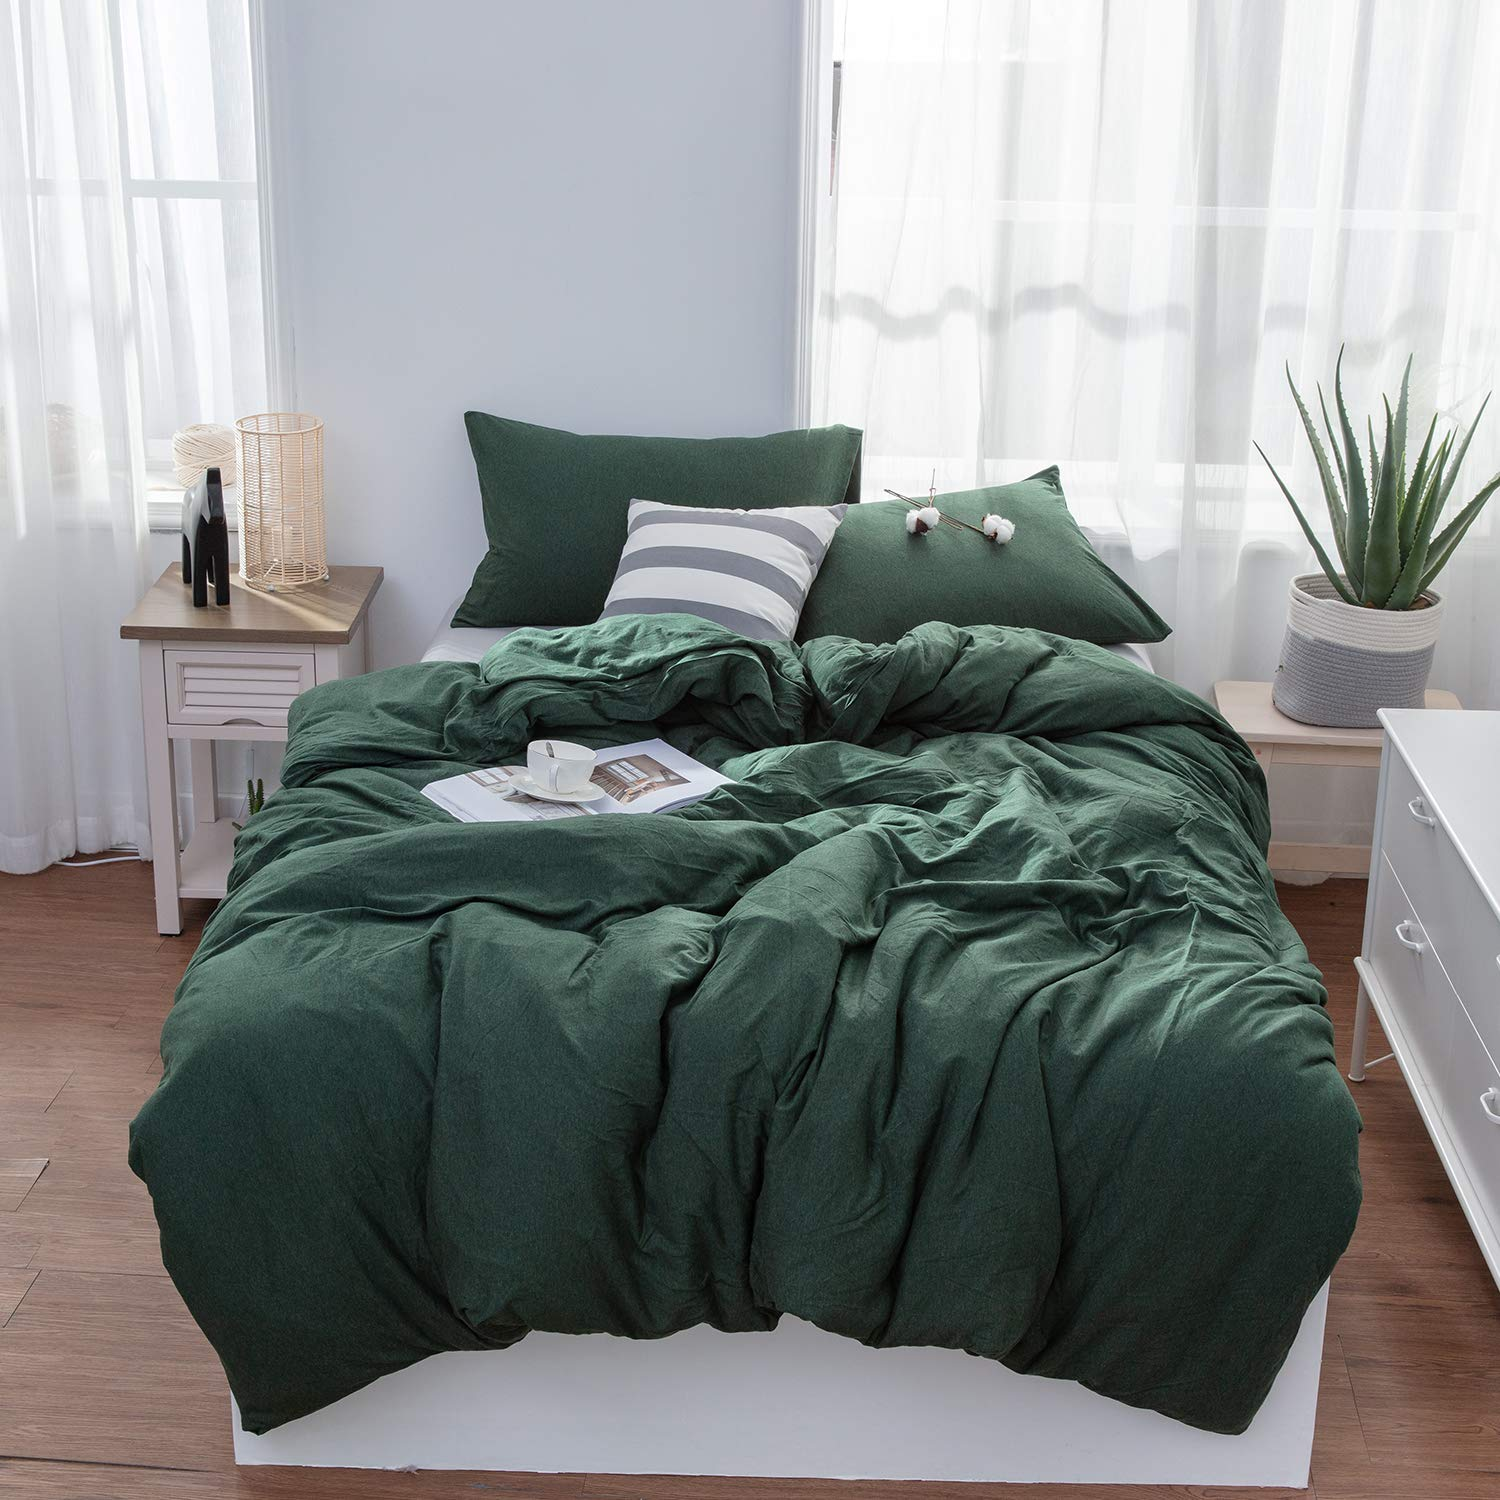 LIFETOWN Green Duvet Cover, Jersey Knit Cotton Duvet Cover Set 3 Pieces, Simple Solid Design, Super Soft and Easy Care (Full/Queen, Dark Green) by LIFETOWN (Image #1)